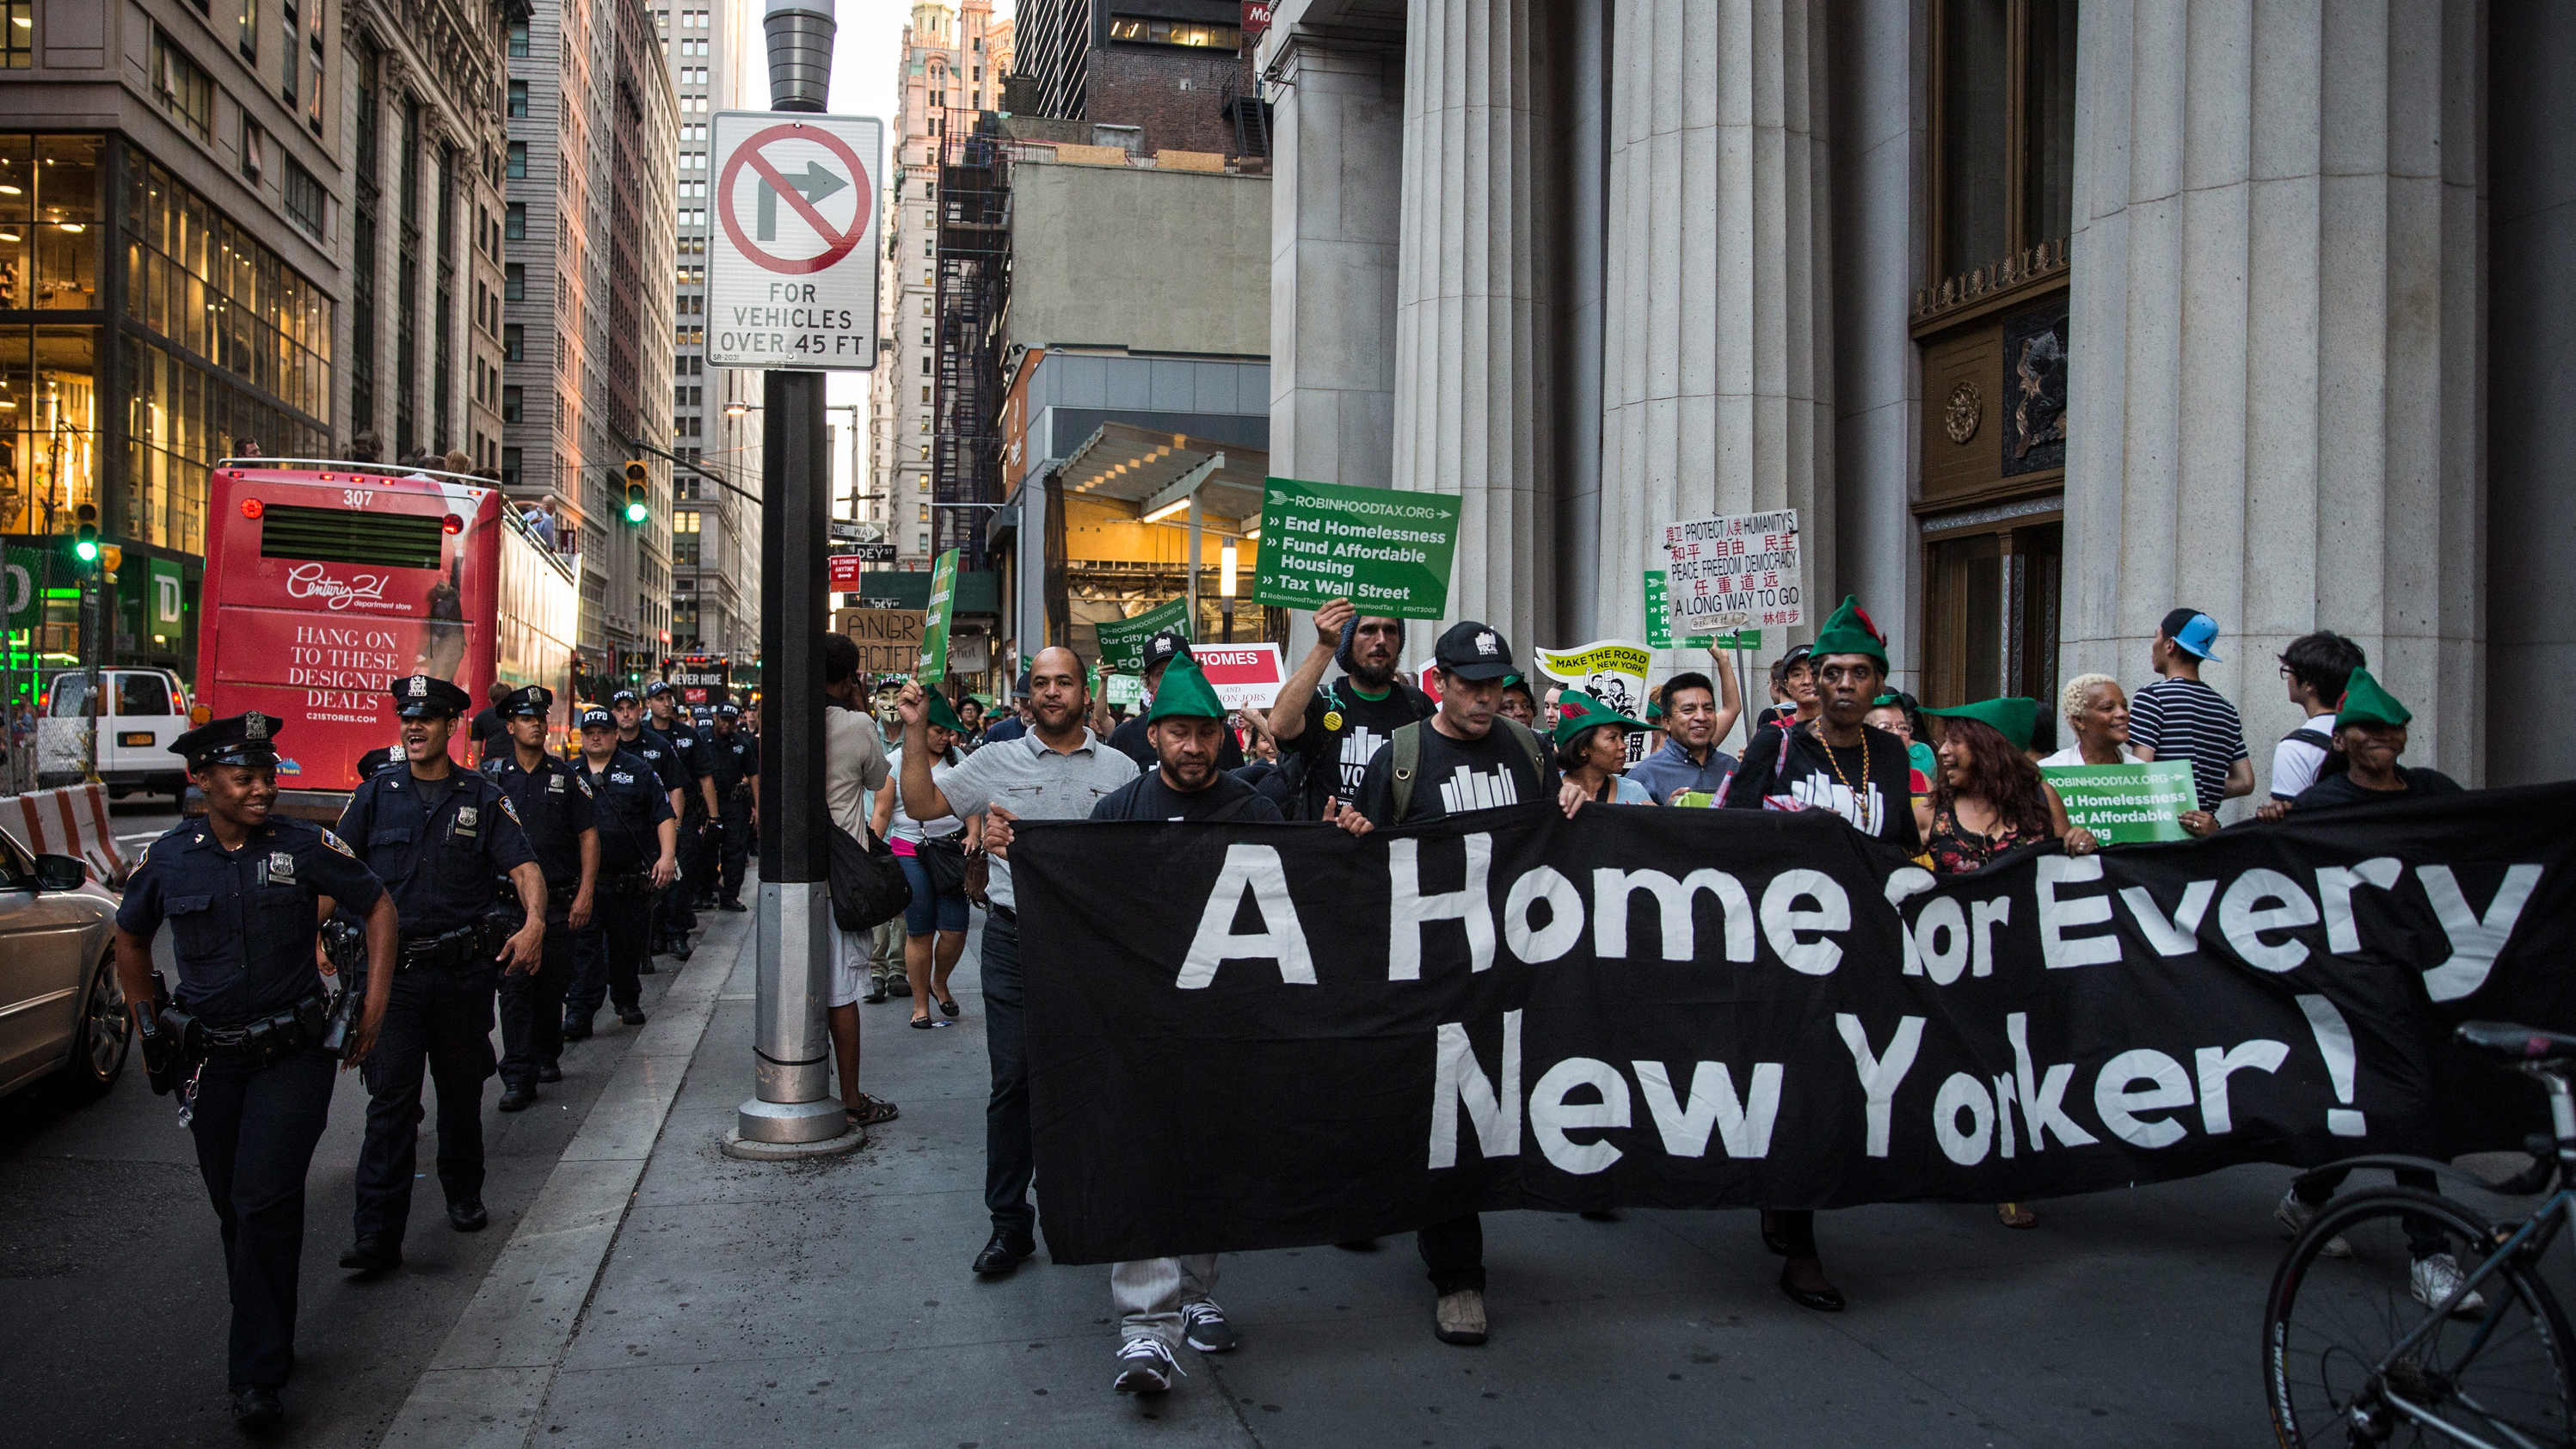 New York Cityu0027s Housing Crisis: ISO 2 Affordable Bedrooms In NYC? Good Luck  With That : NPR